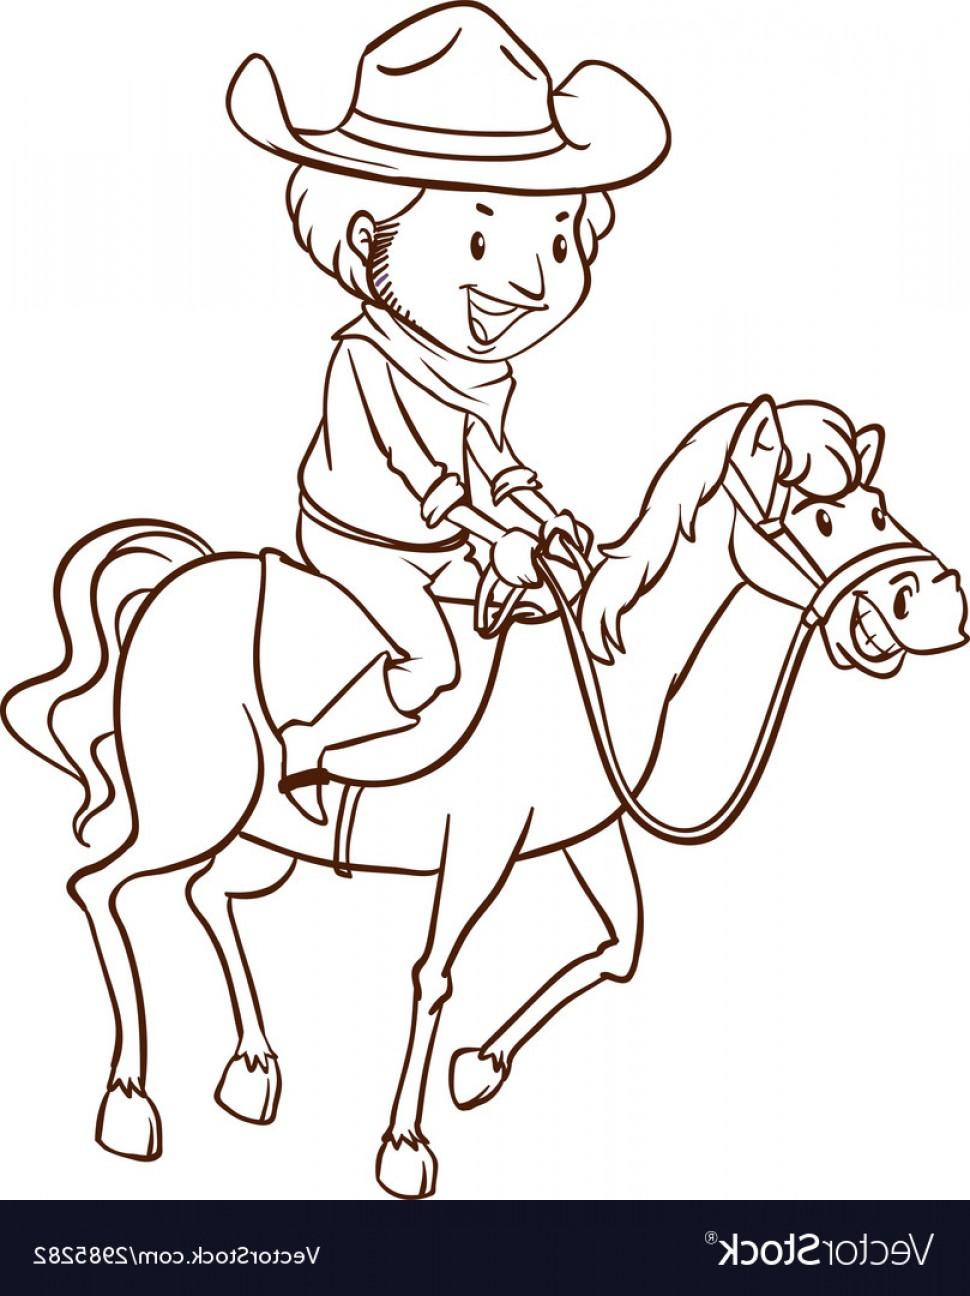 Cowboys Line Drawings Vector: A Simple Drawing Of A Cowboy Vector